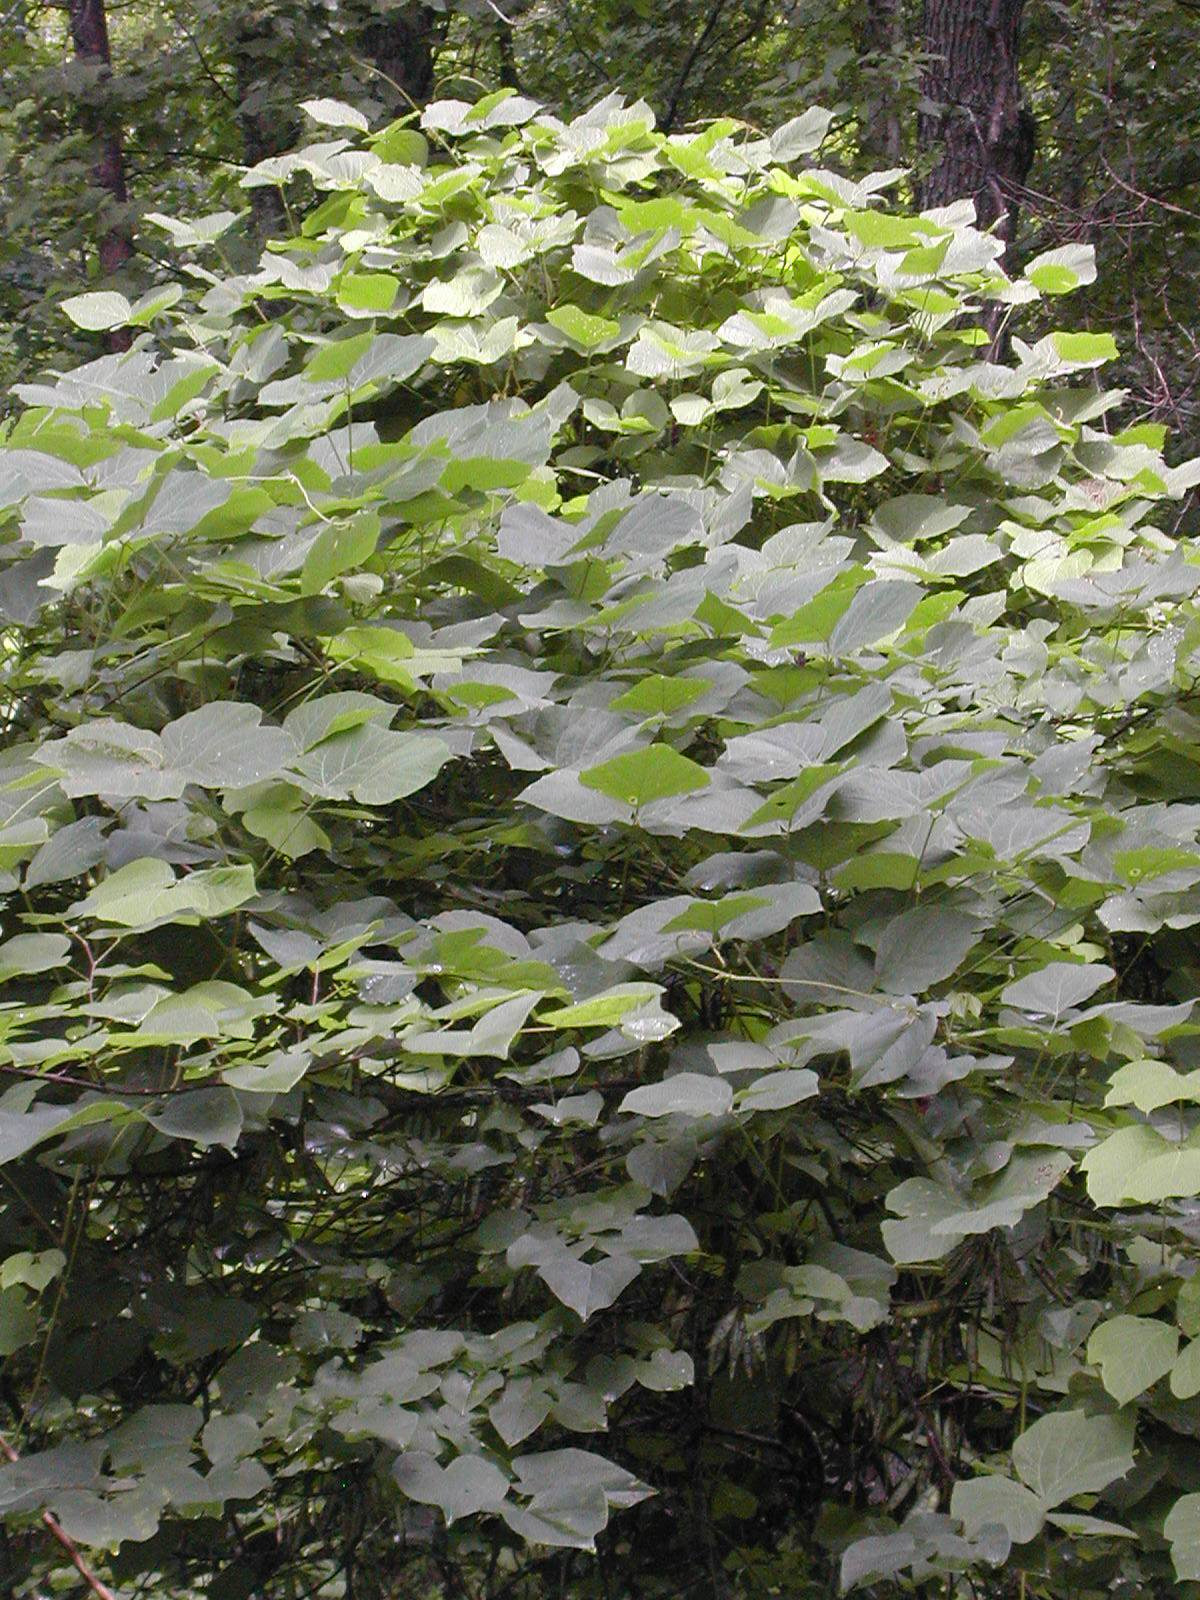 "A curtain of kudzu covers a tree in Cumberland Gap National Historic Park outside Middlesboro, Ky. The kudzu vine was promoted by the federal government in the 1930's for erosion control and for providing shade, hence the name ""porch plant."" It's a vigorous perennial, capable of growing 60 to 100 feet per season. It soon lost favor around the South, where it grew out of control -- covering trees, buildings and yards. The U.S. Department of Agriculture declared it a pest weed in 1953."